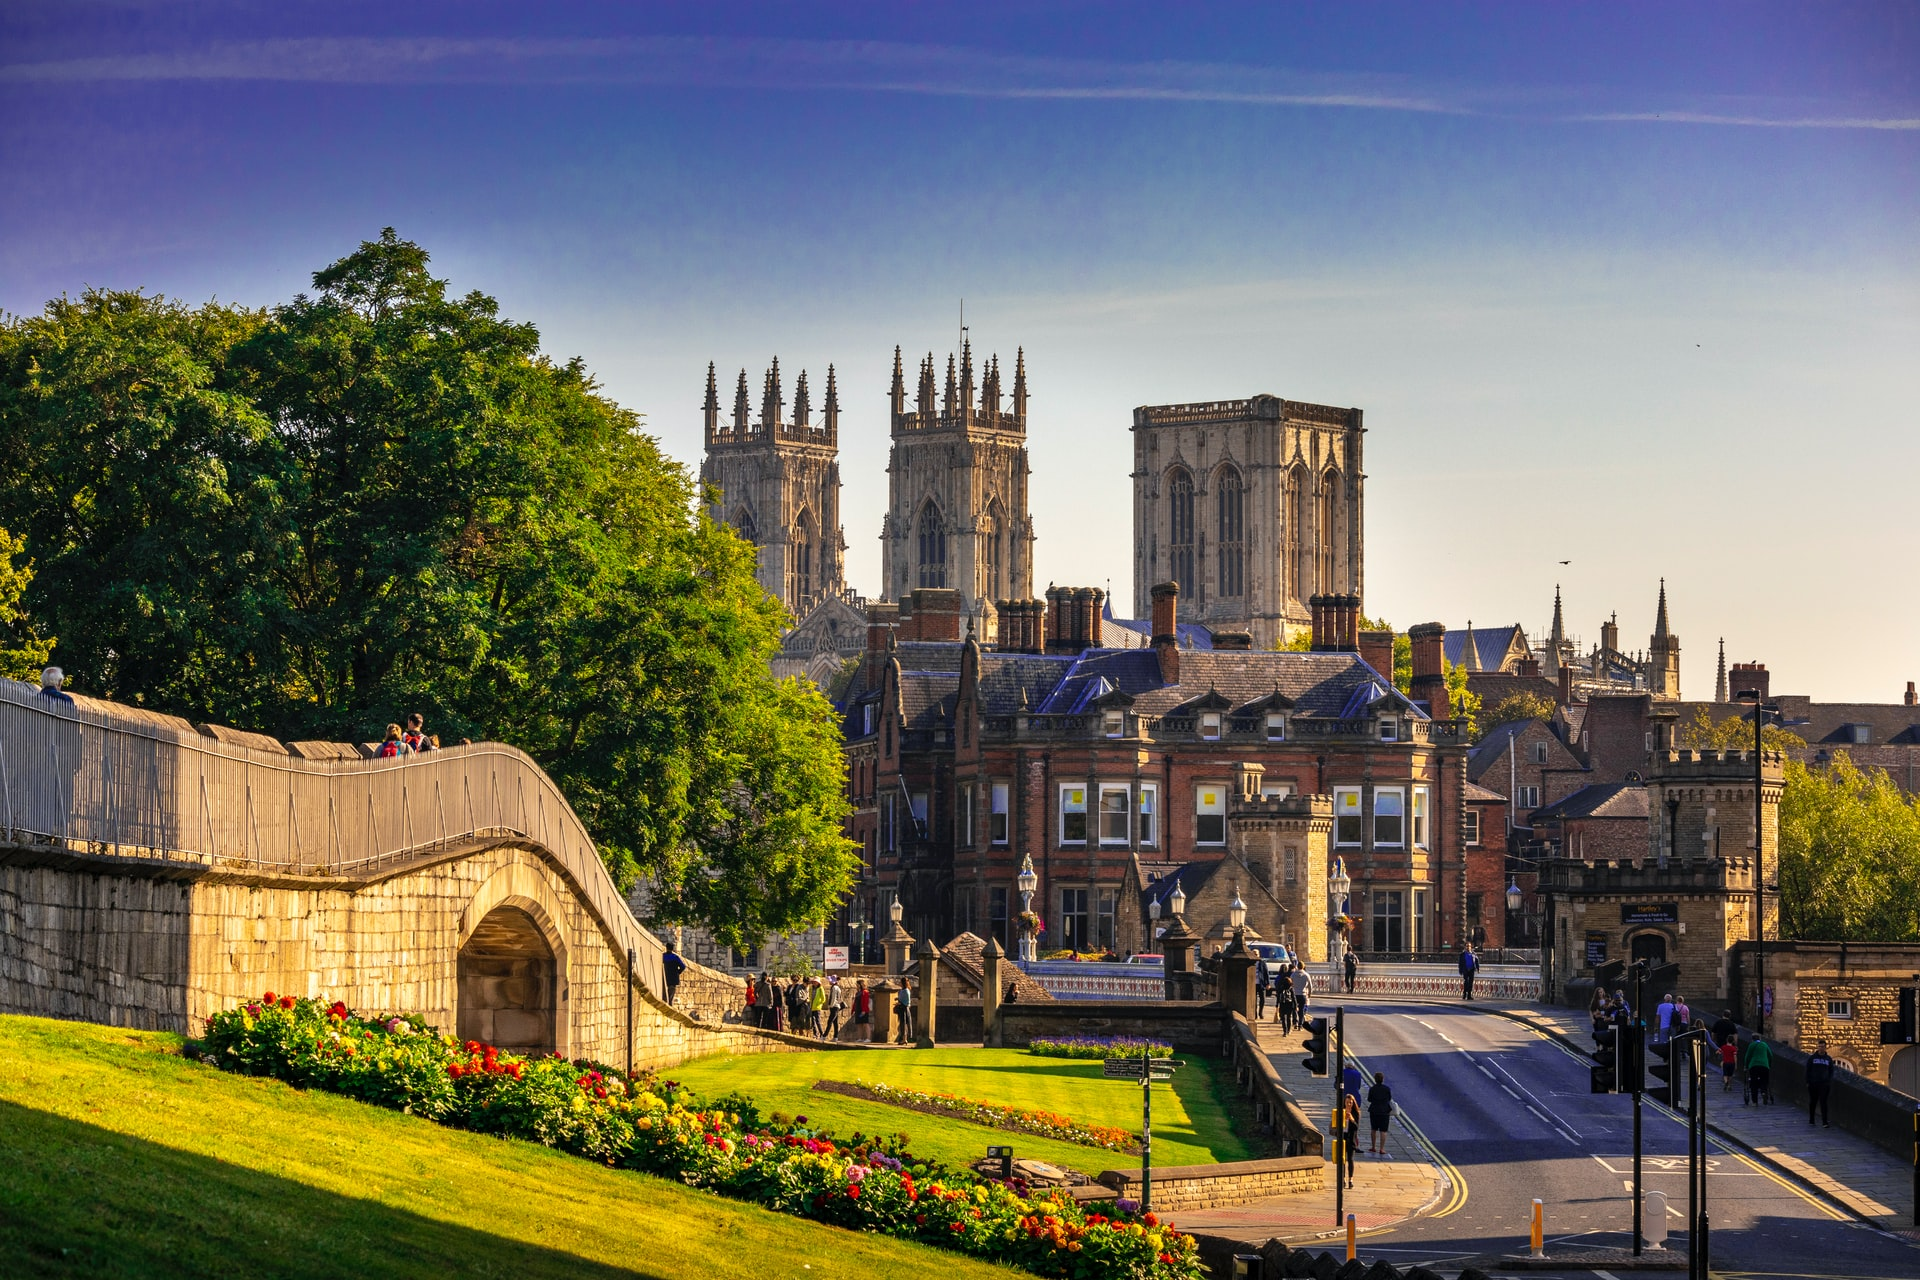 York with views of York Minster in the background